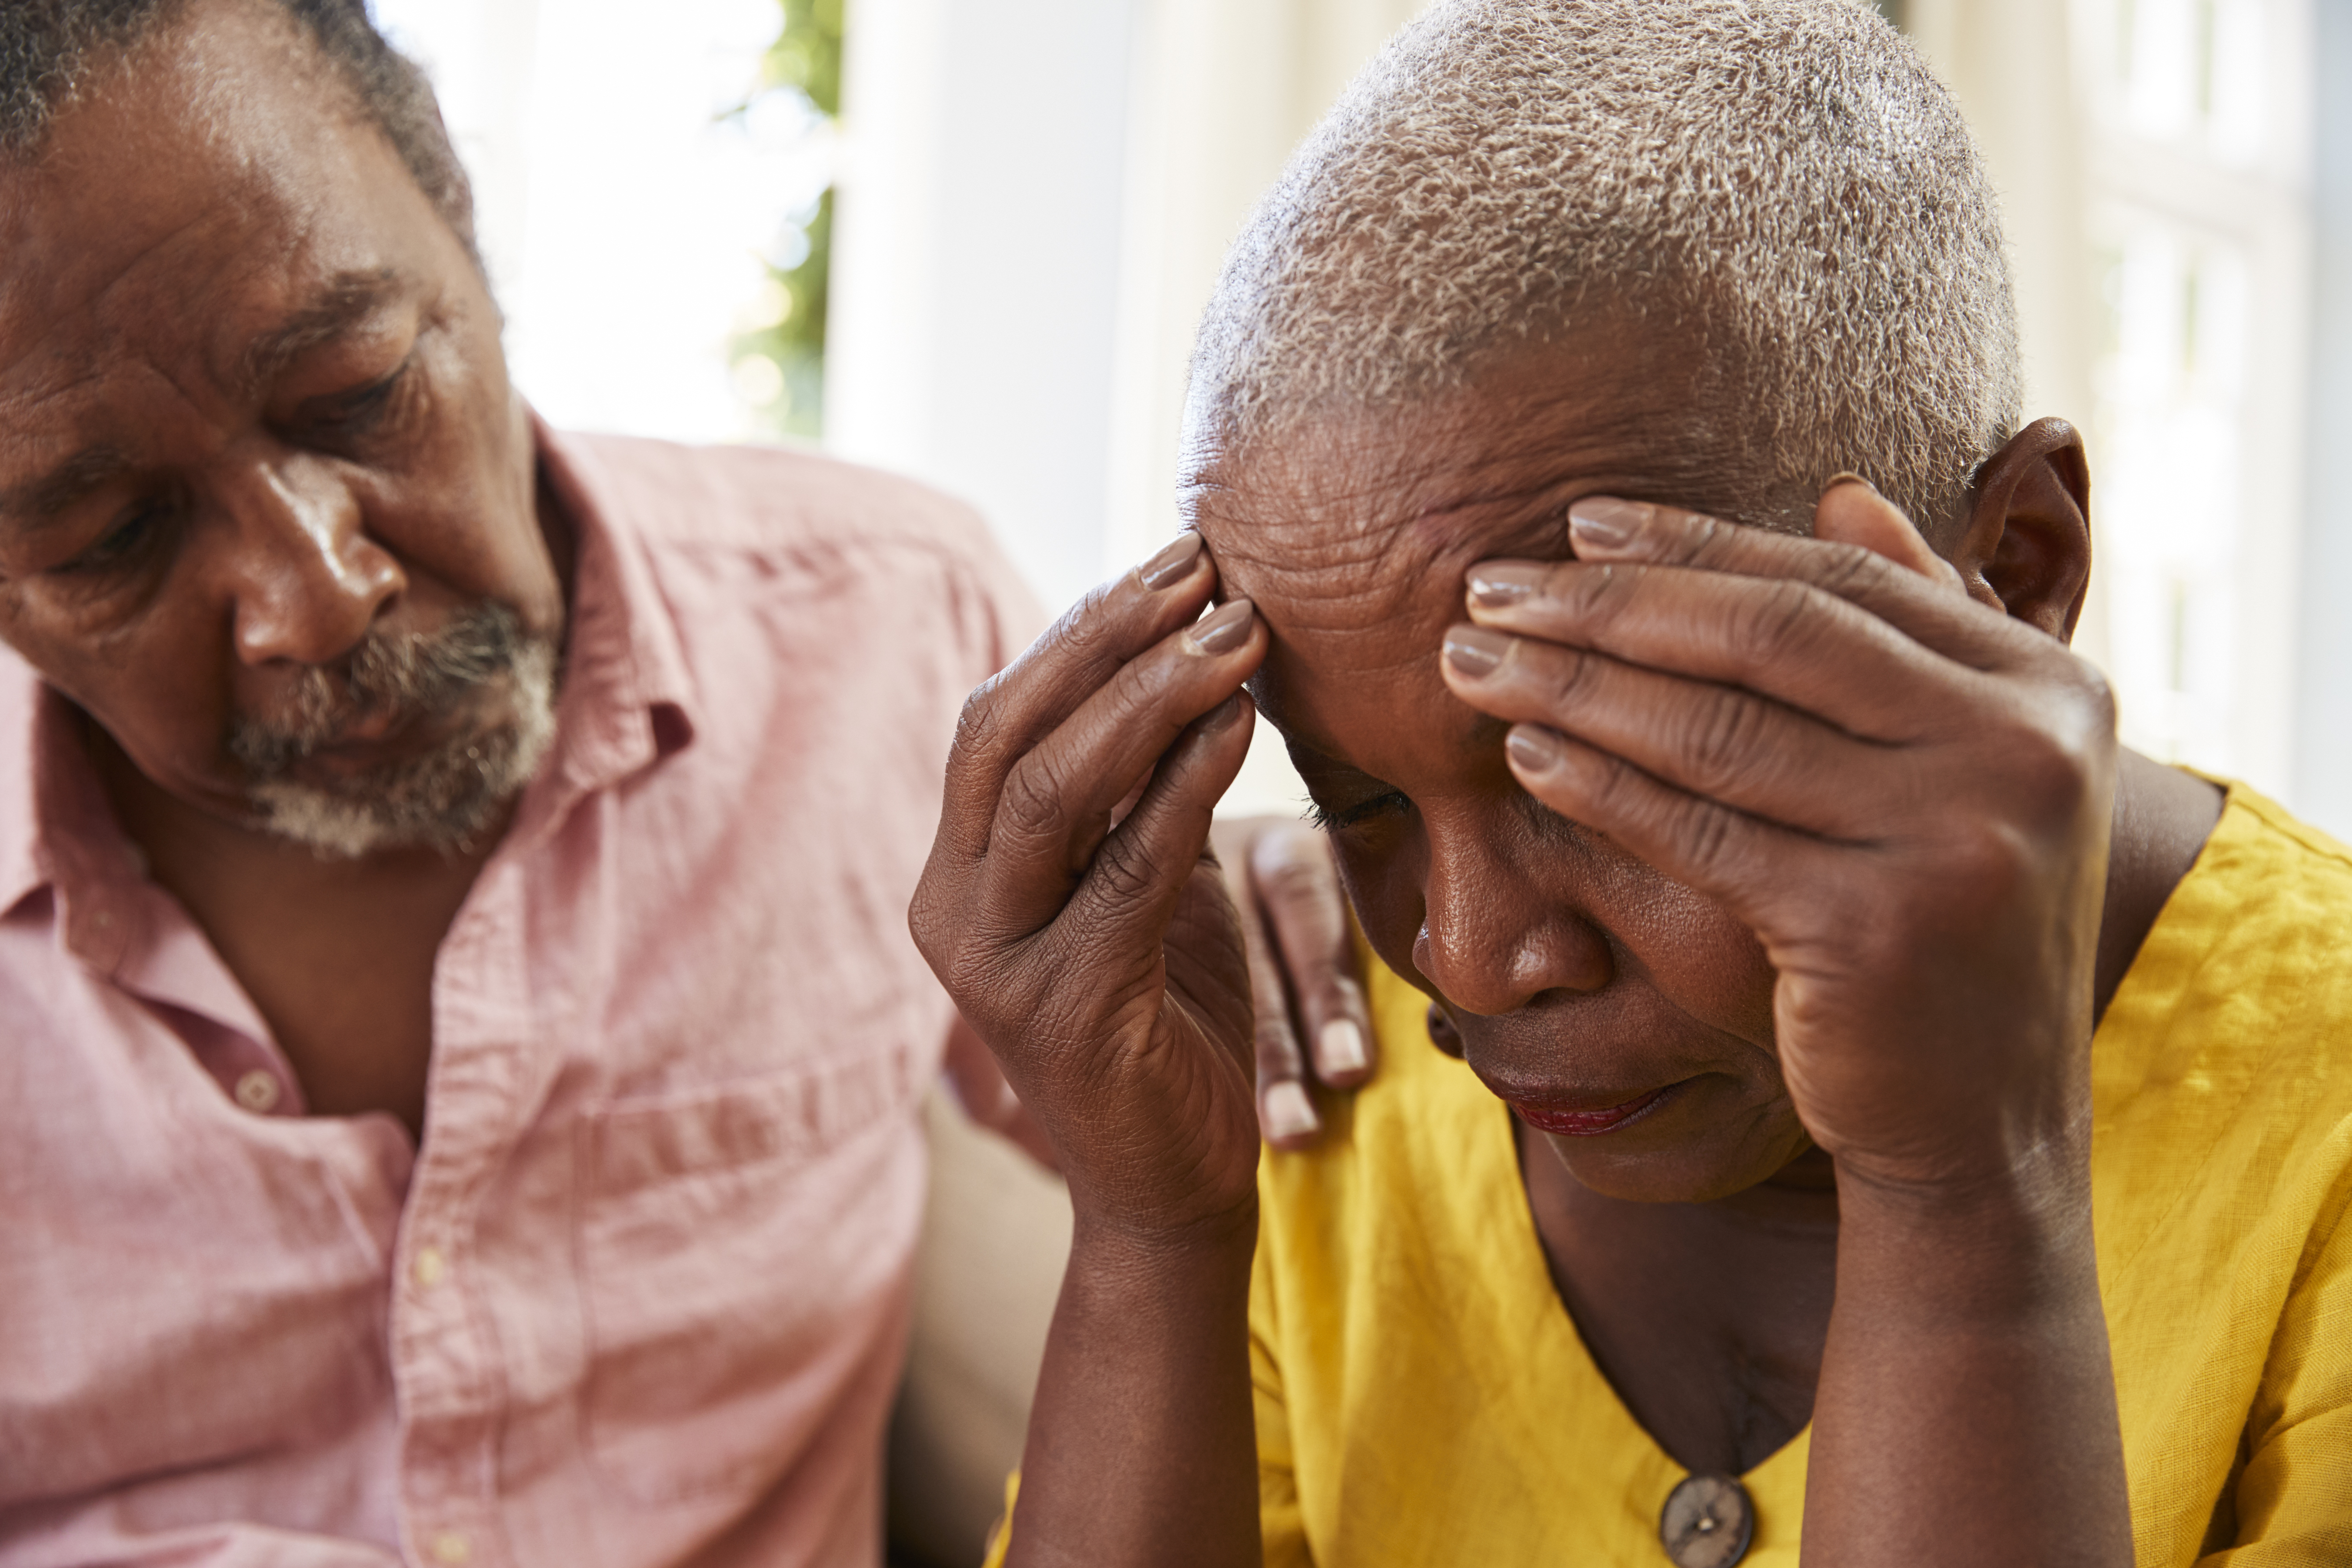 senior-man-comforting-woman-with-depression-at-home